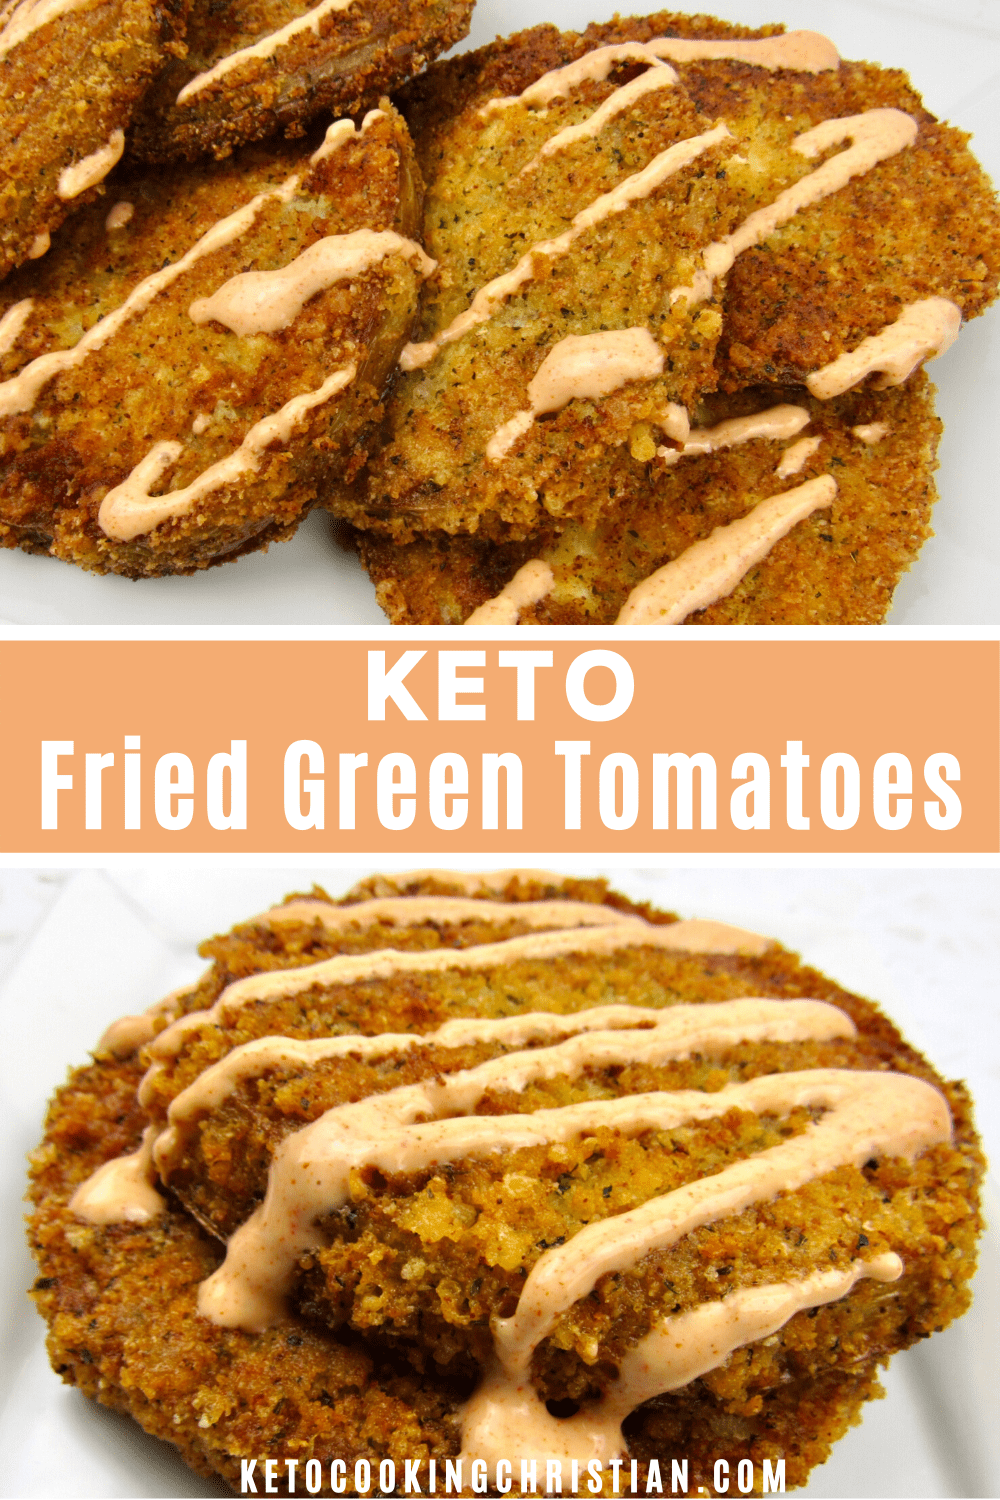 PIN Keto Fried Green Tomatoes - Low Carb/Gluten-Free